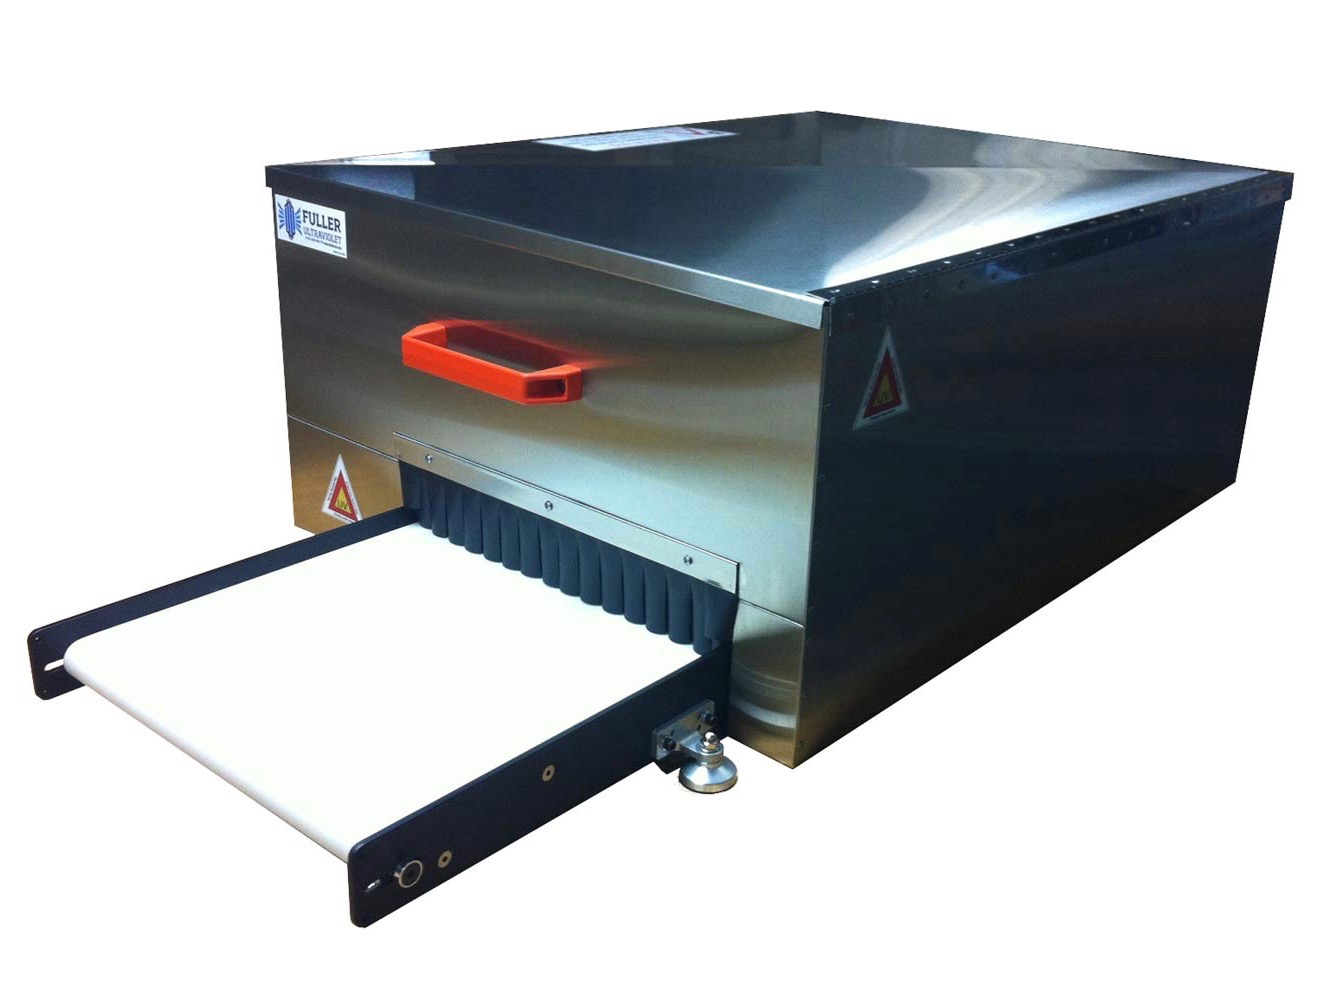 Sterilizing Conveyor System for LED Wristbands at Concert Venues